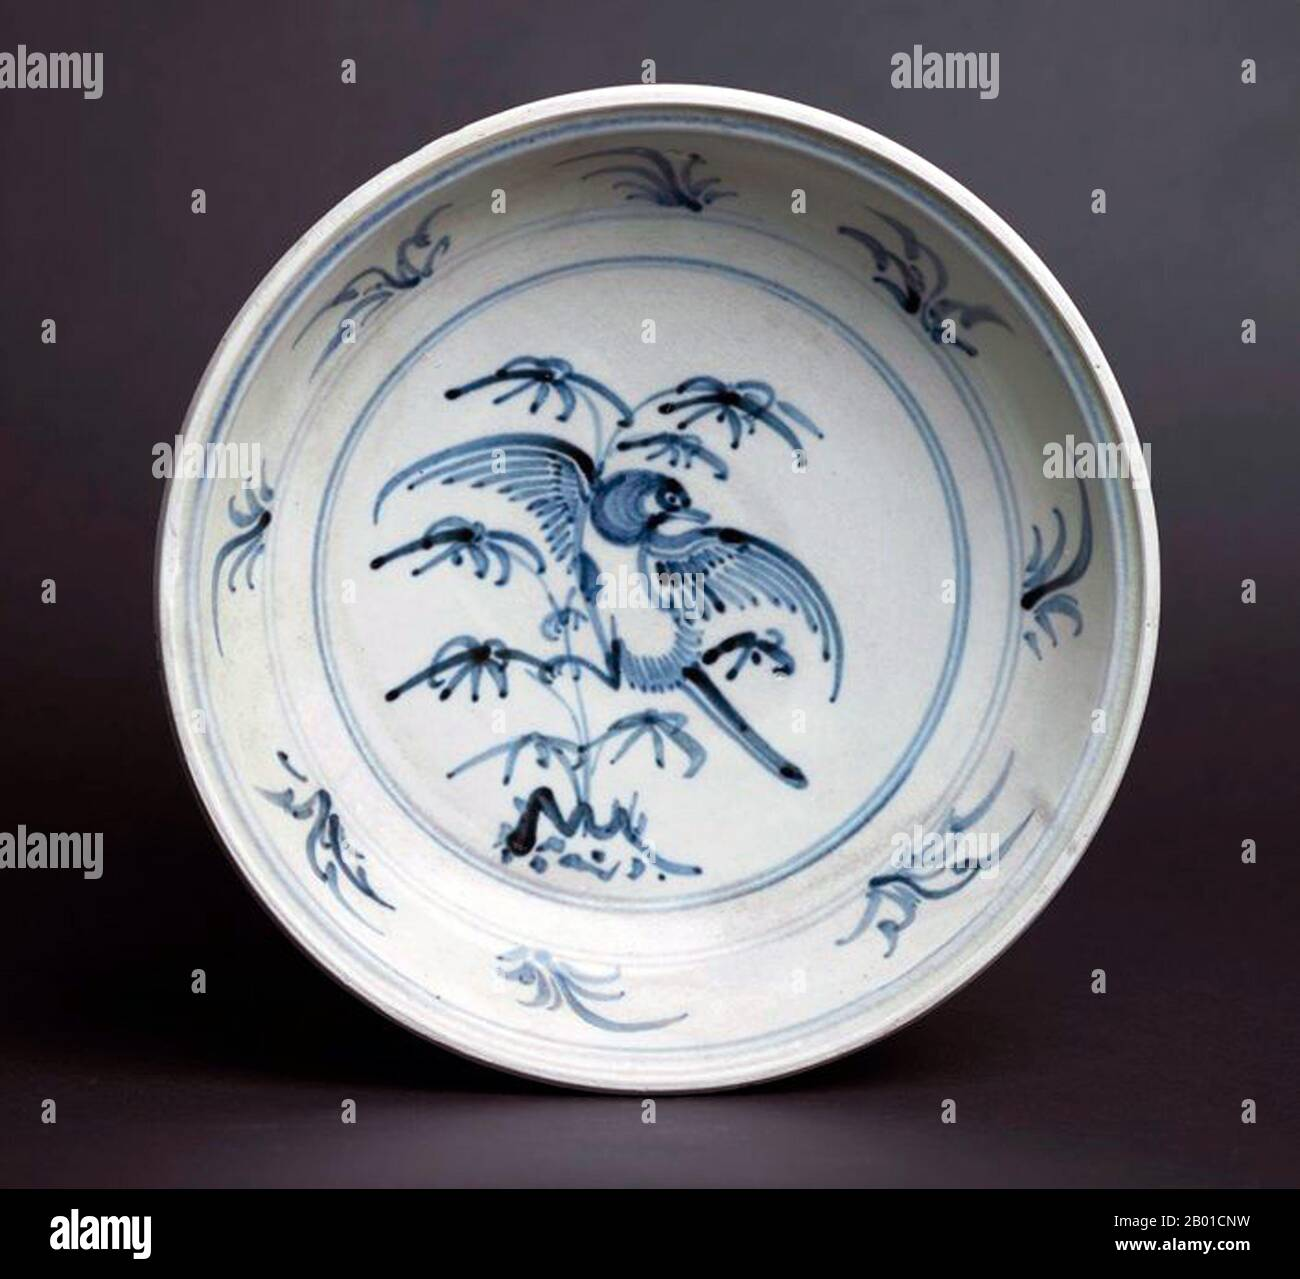 Fine Ceramics High Resolution Stock Photography and Images - Alamy